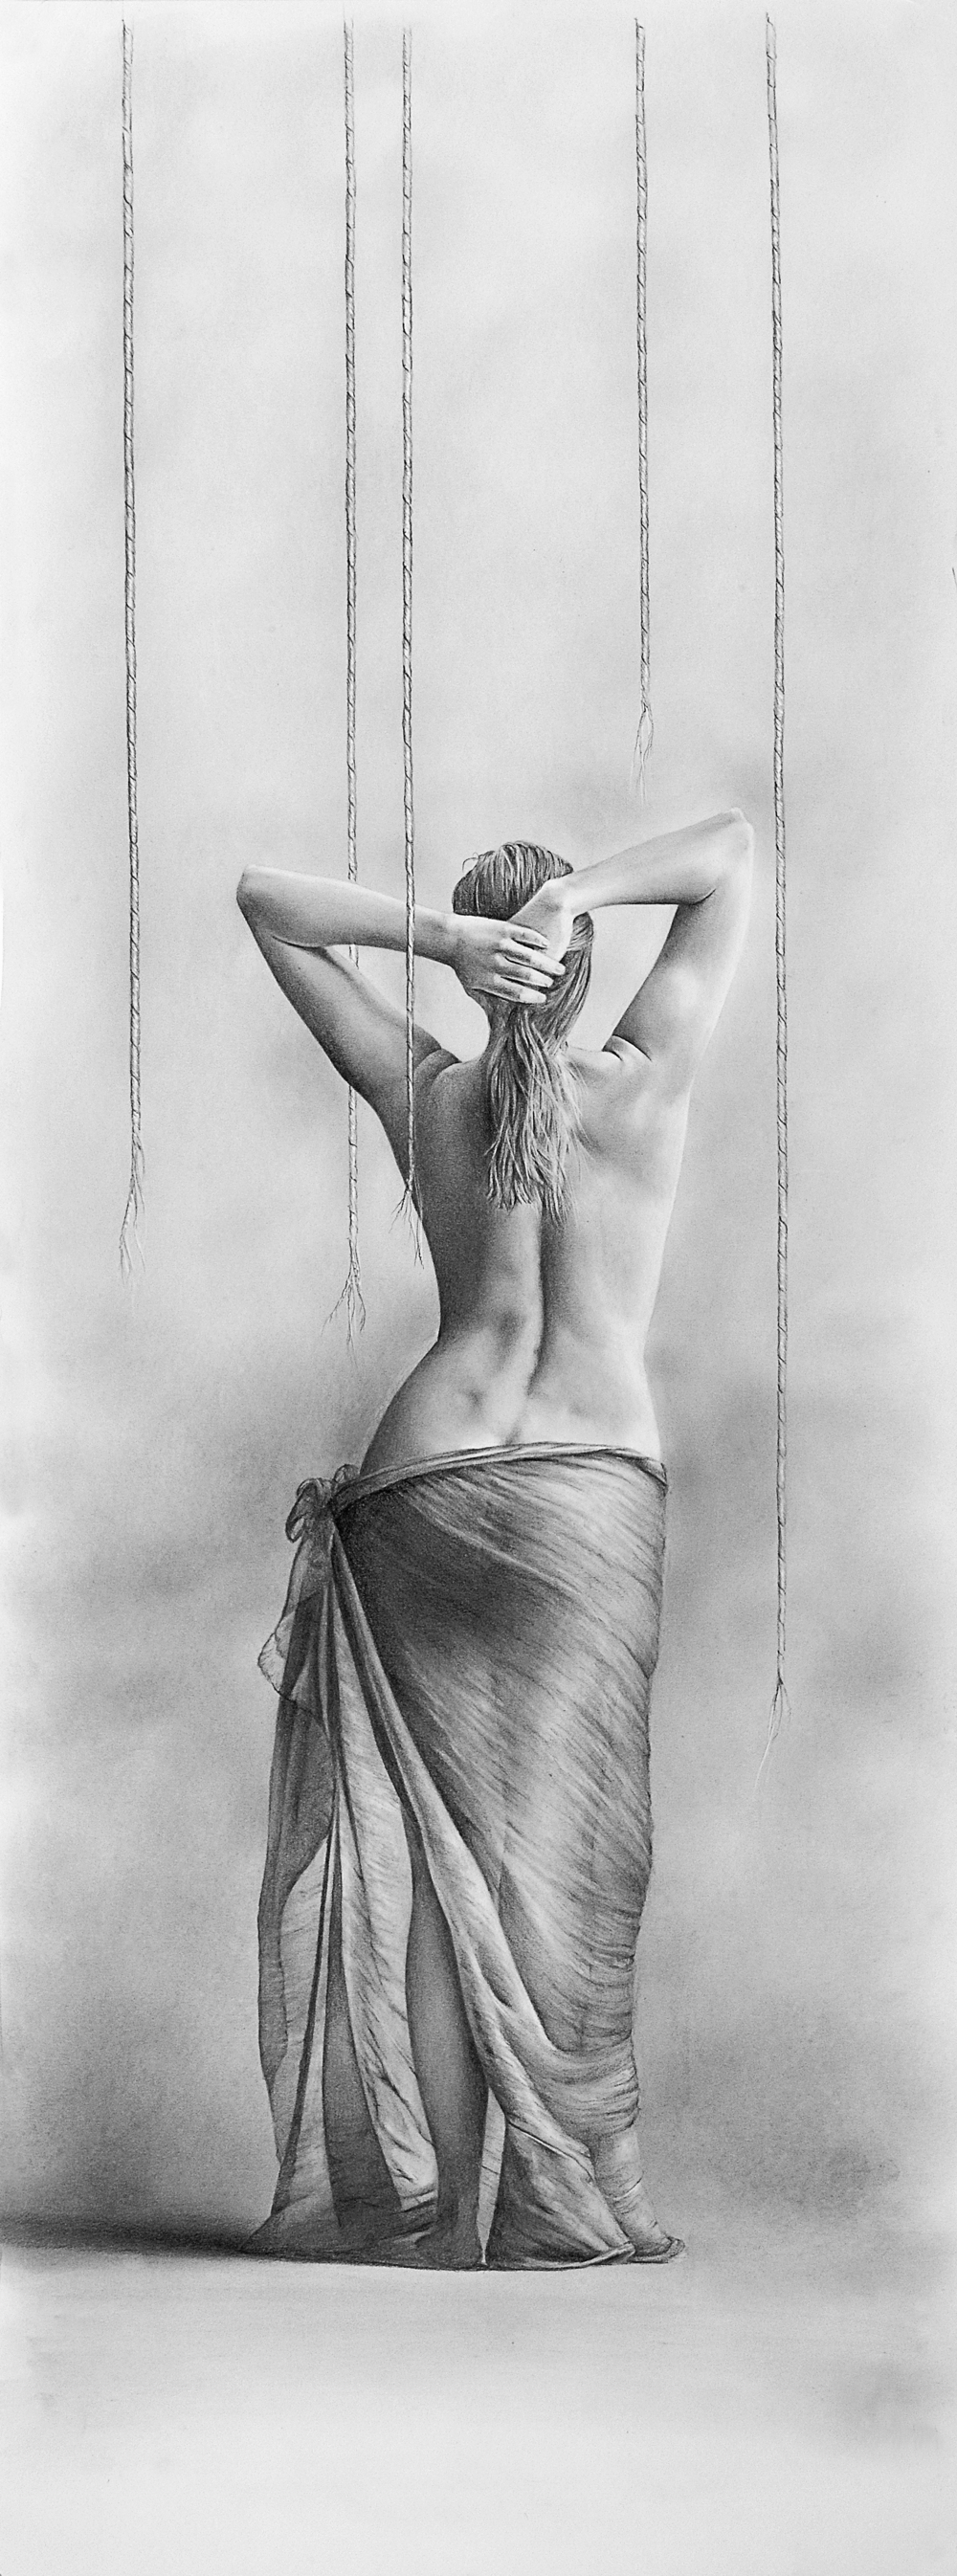 bill_higginson-boundless-graphite-drawing-realism-black-and-white